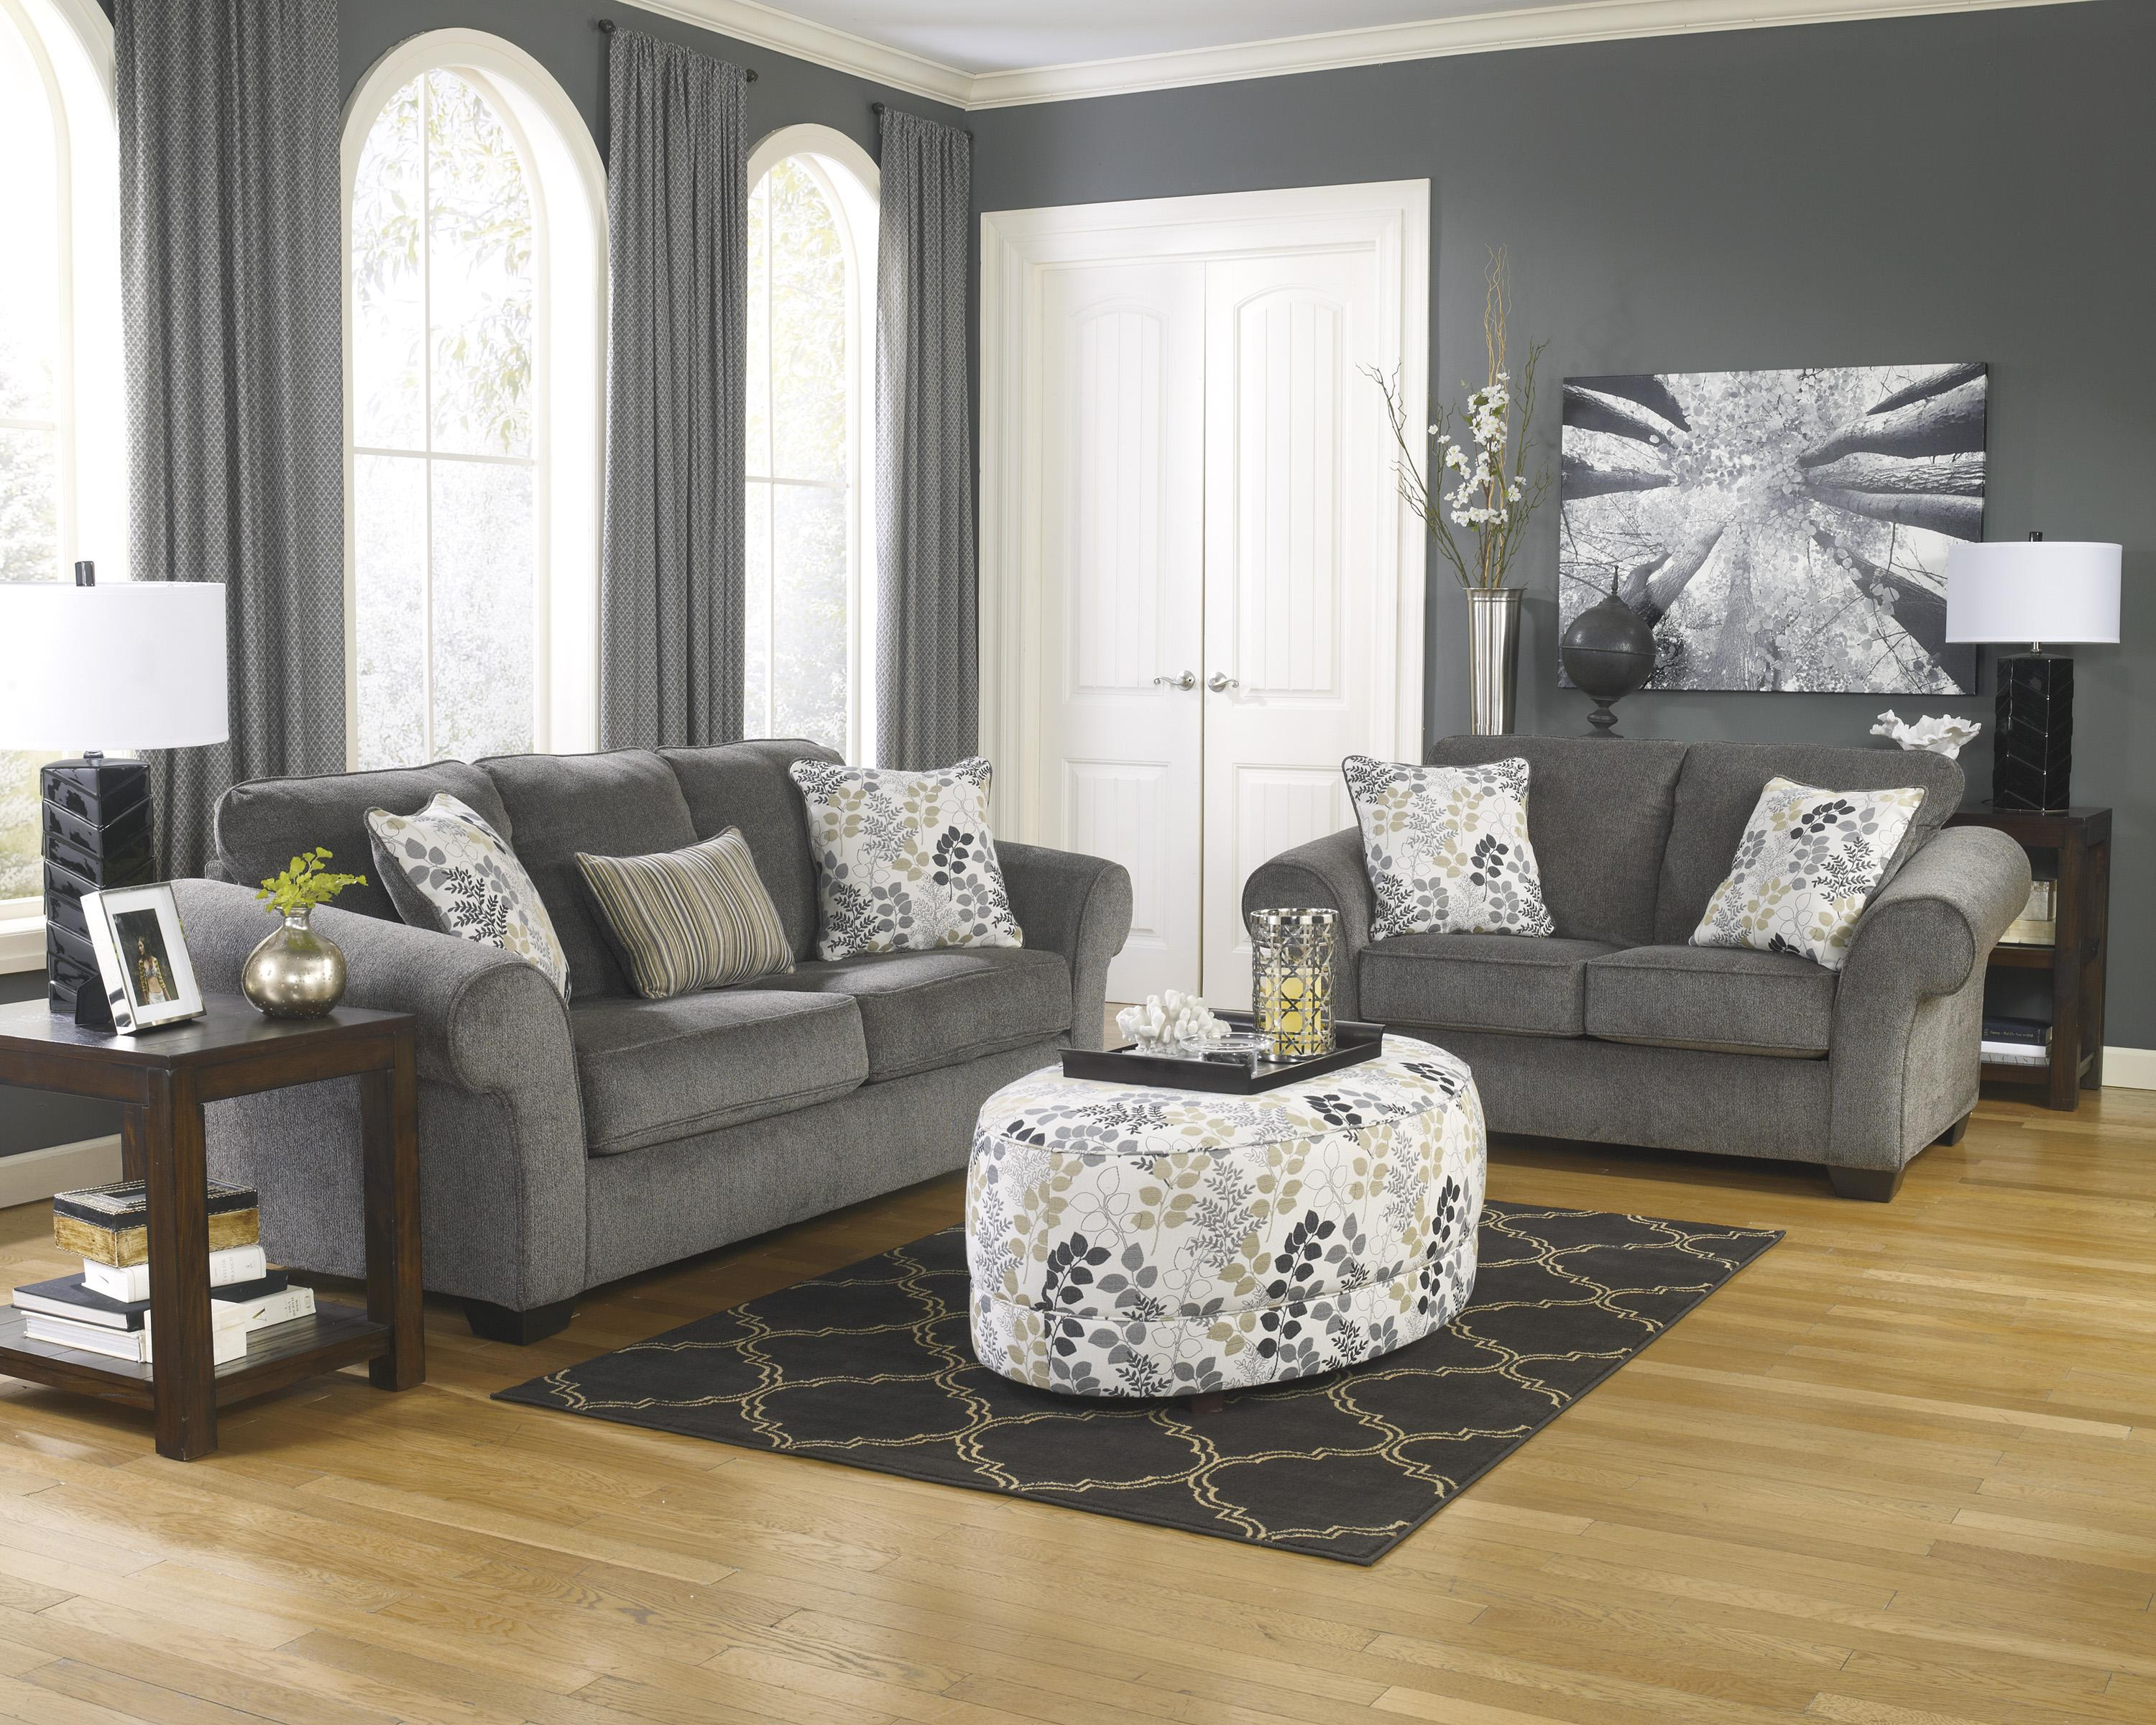 Signature Design by Ashley Makonnen - Charcoal Stationary Living Room Group - Item Number: 78000 Living Room Group 5